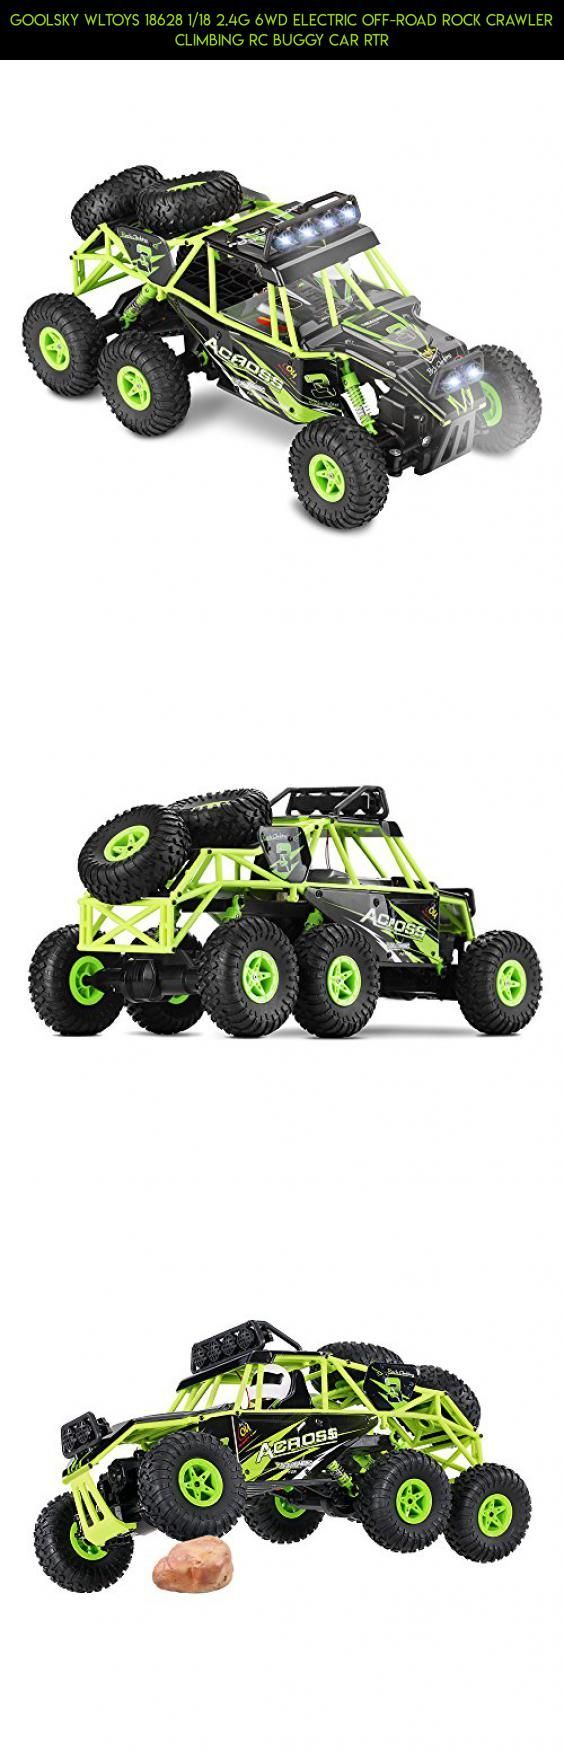 Goolsky Wltoys 18628 1/18 2.4G 6WD Electric Off-Road Rock Crawler ...